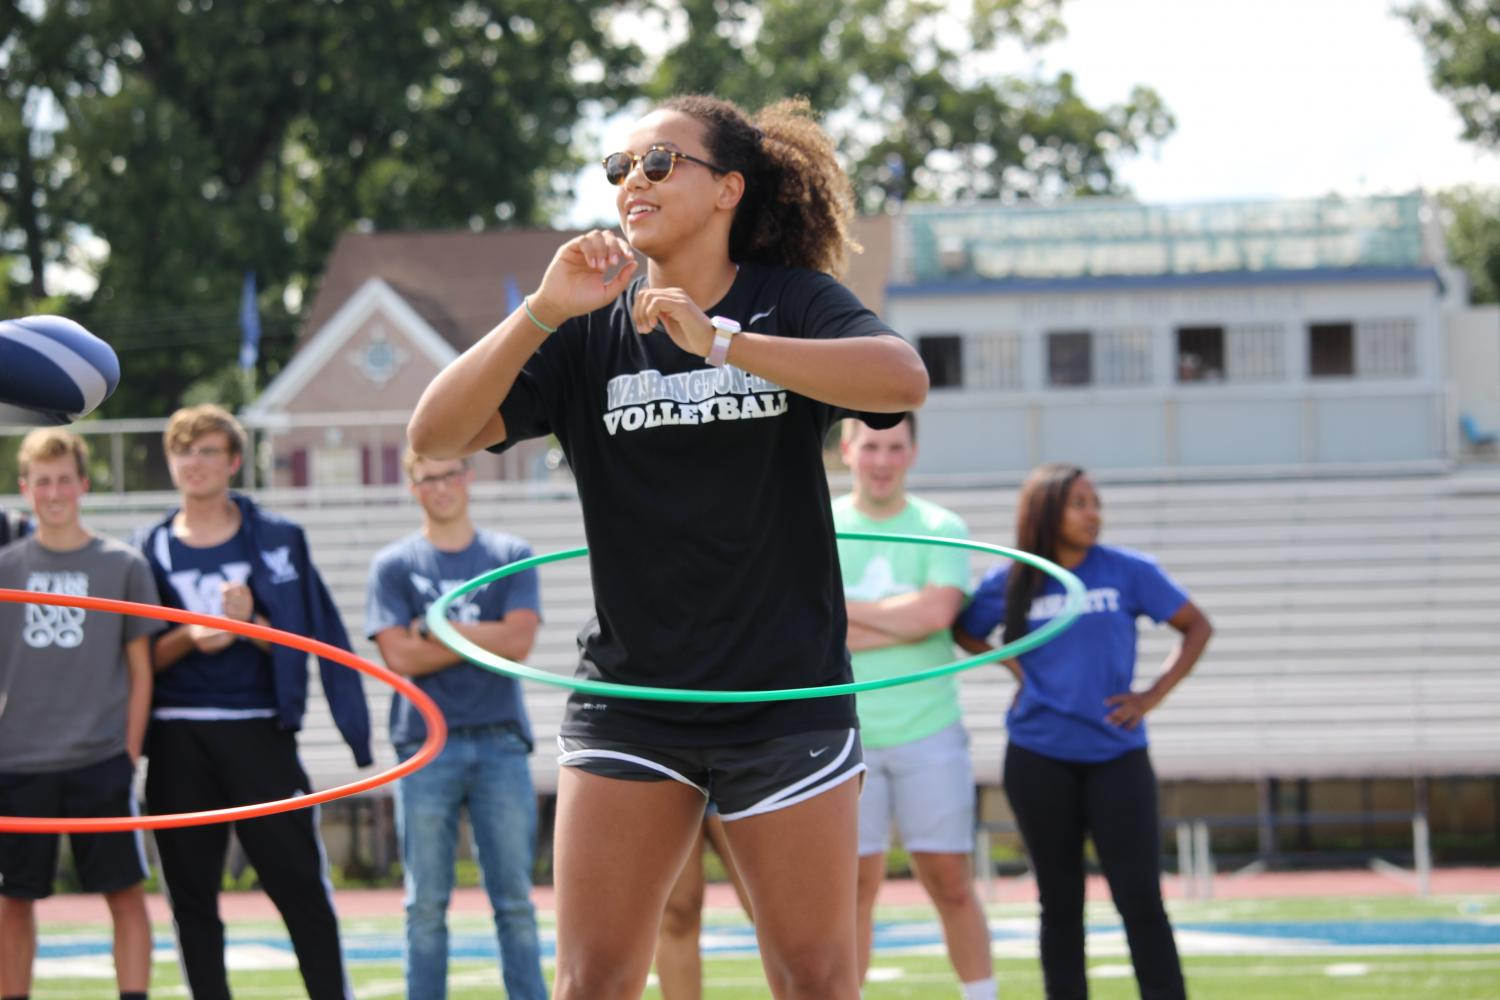 Senior Leonie Adler competes in the hula hoop competition for the school's varsity volleyball team.